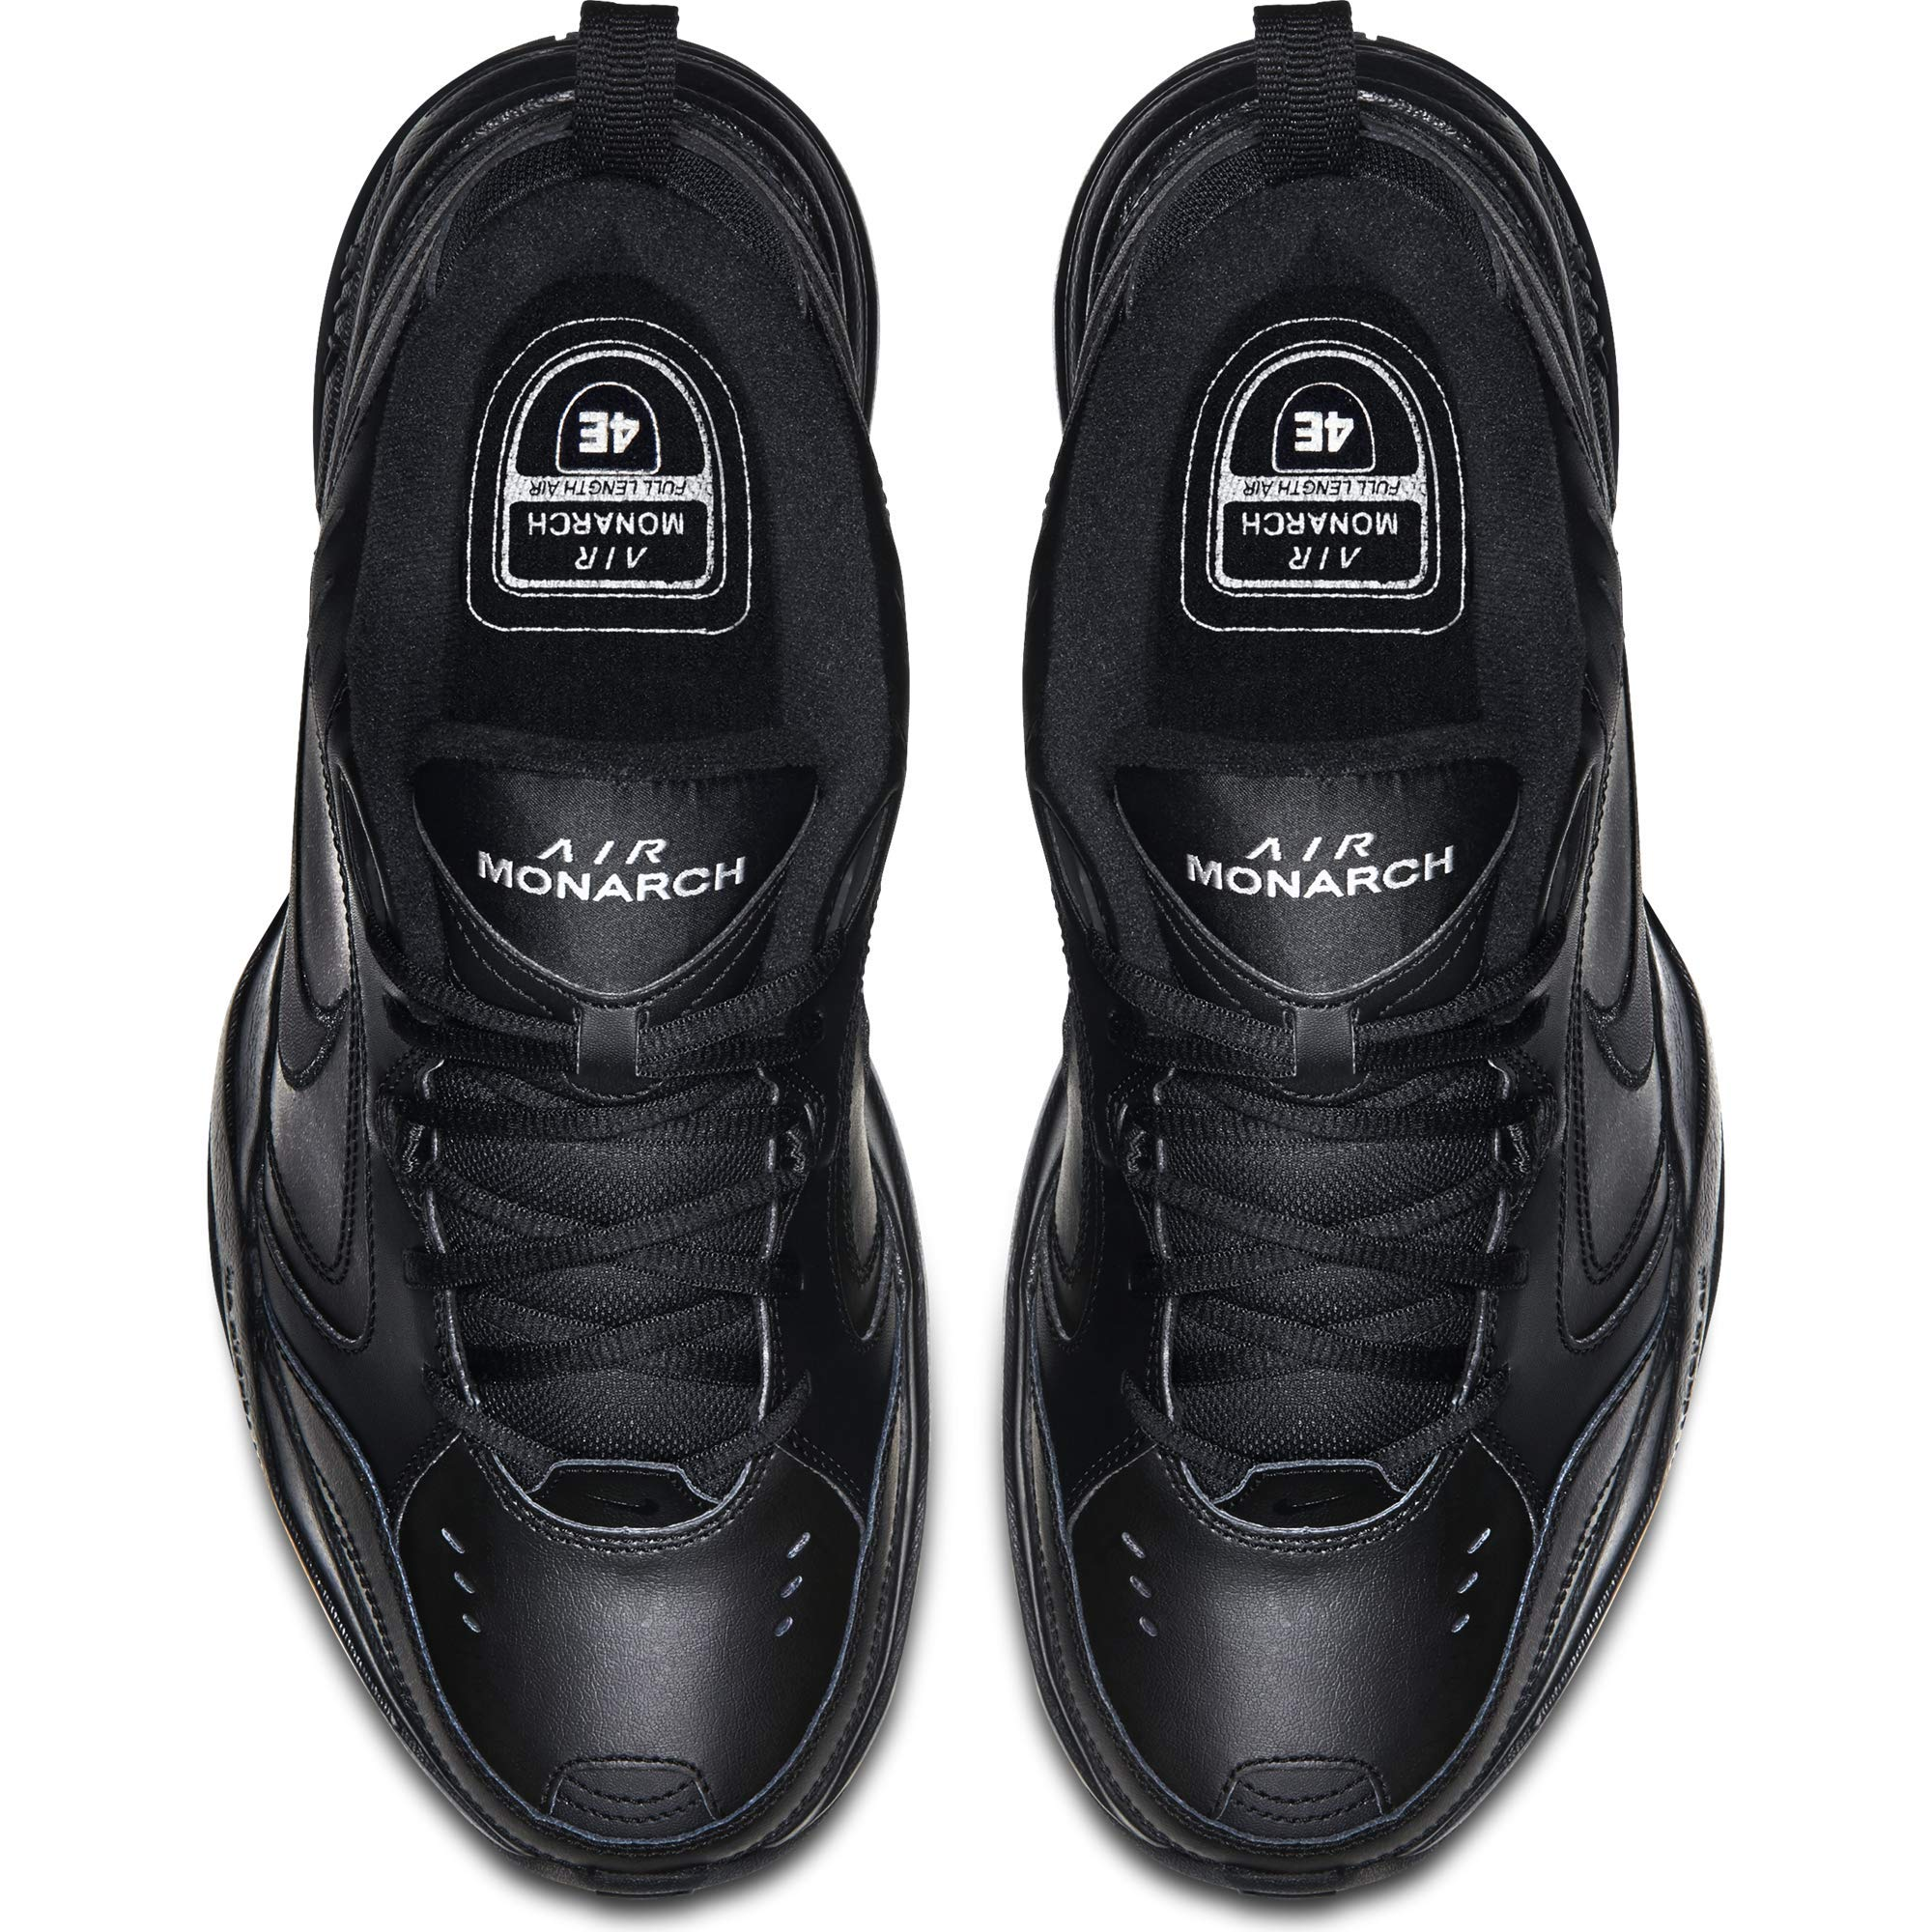 NIKE AIR MONARCH IV (MENS) - 6 Black/Black by Nike (Image #9)